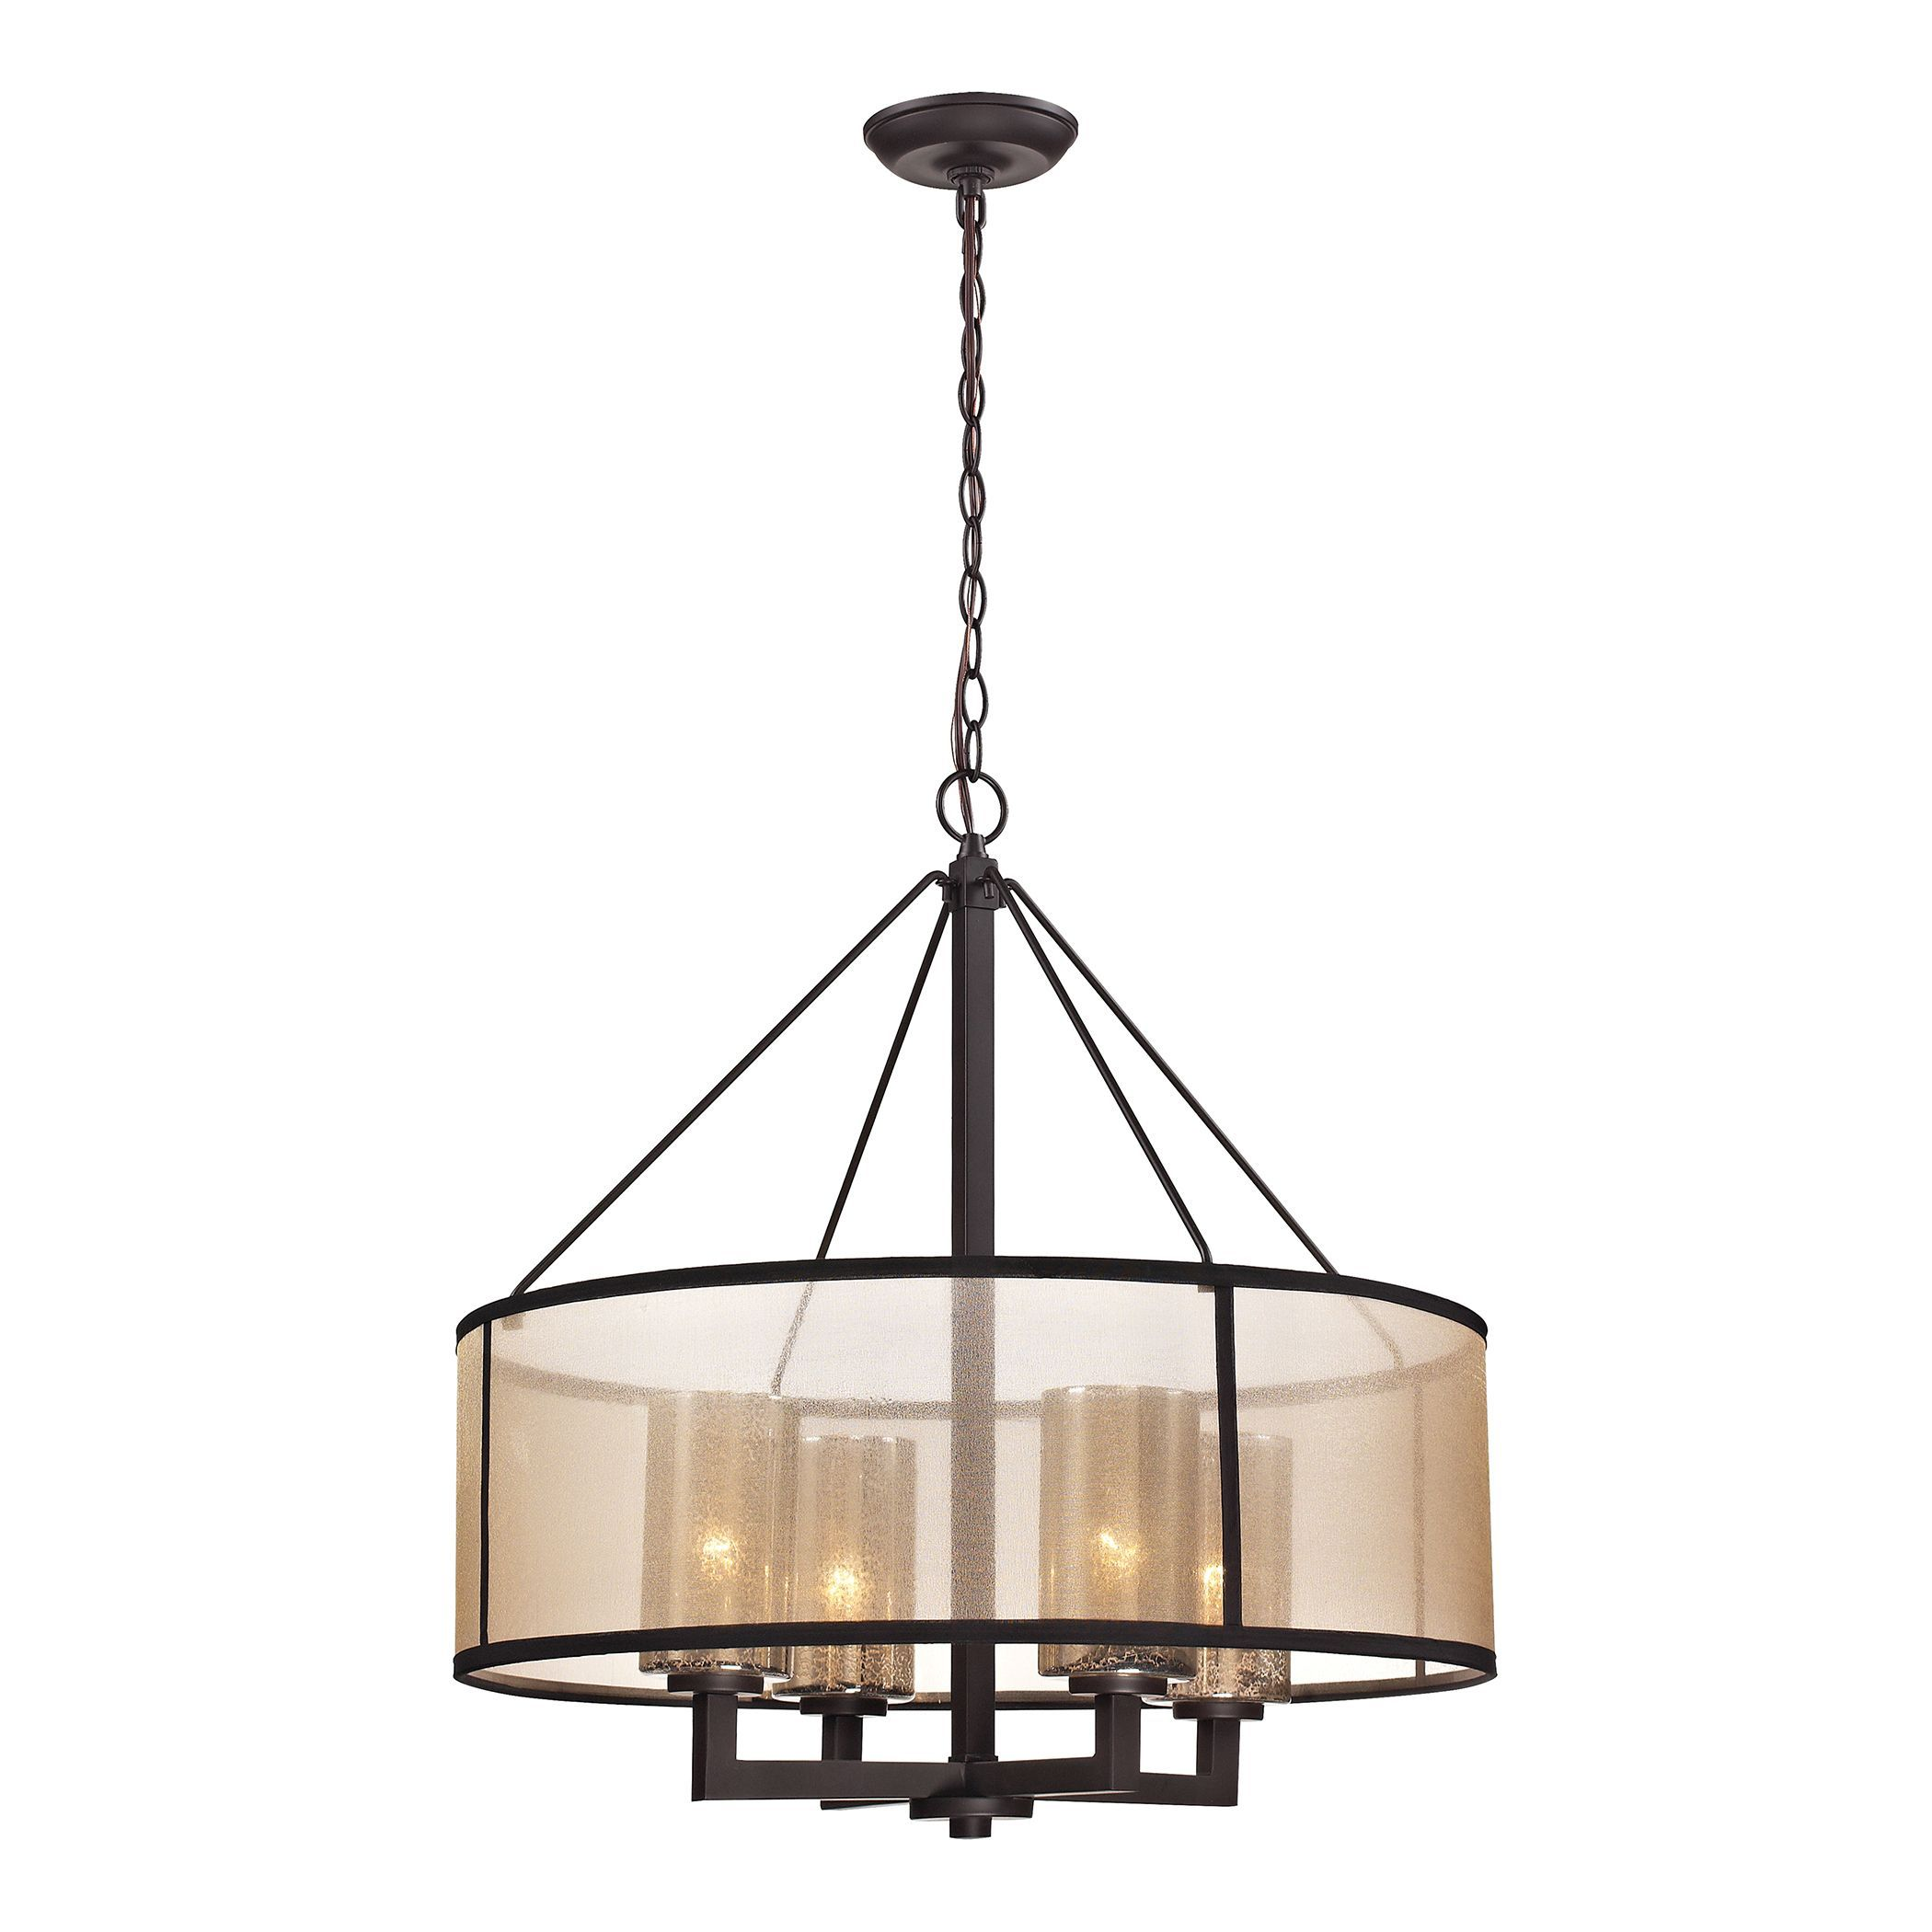 The Elk Lighting Diffusion chandelier is the antique charm of